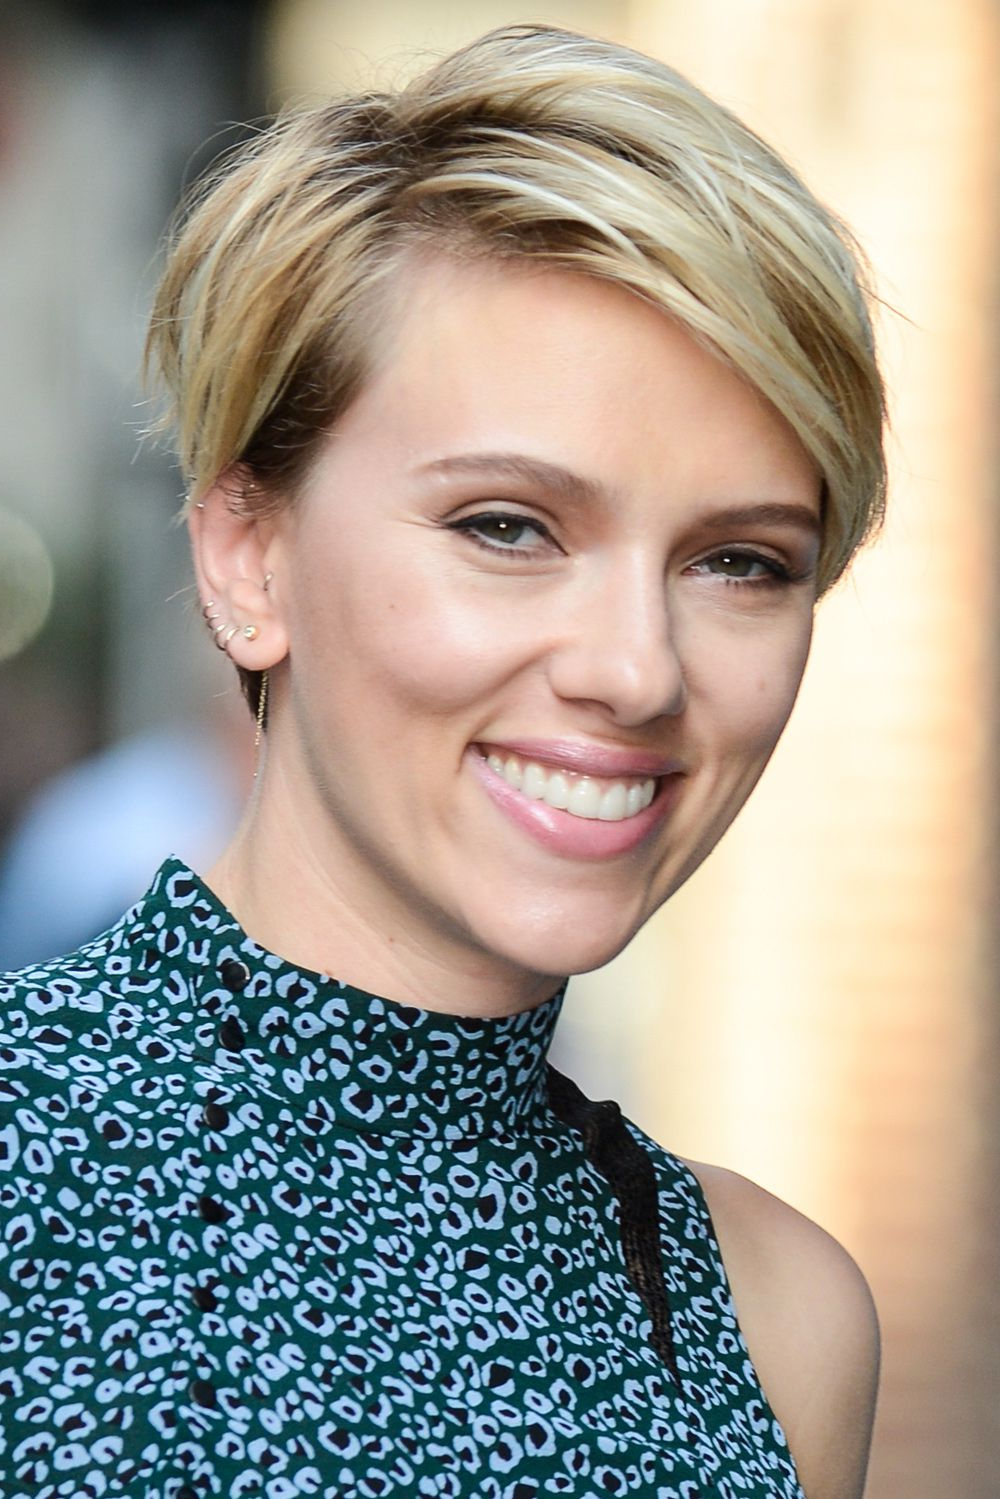 6 Super Popular Short Haircuts You Need To Try In 2018 In 2018 Pertaining To Scarlett Johansson Short Hairstyles (View 8 of 25)